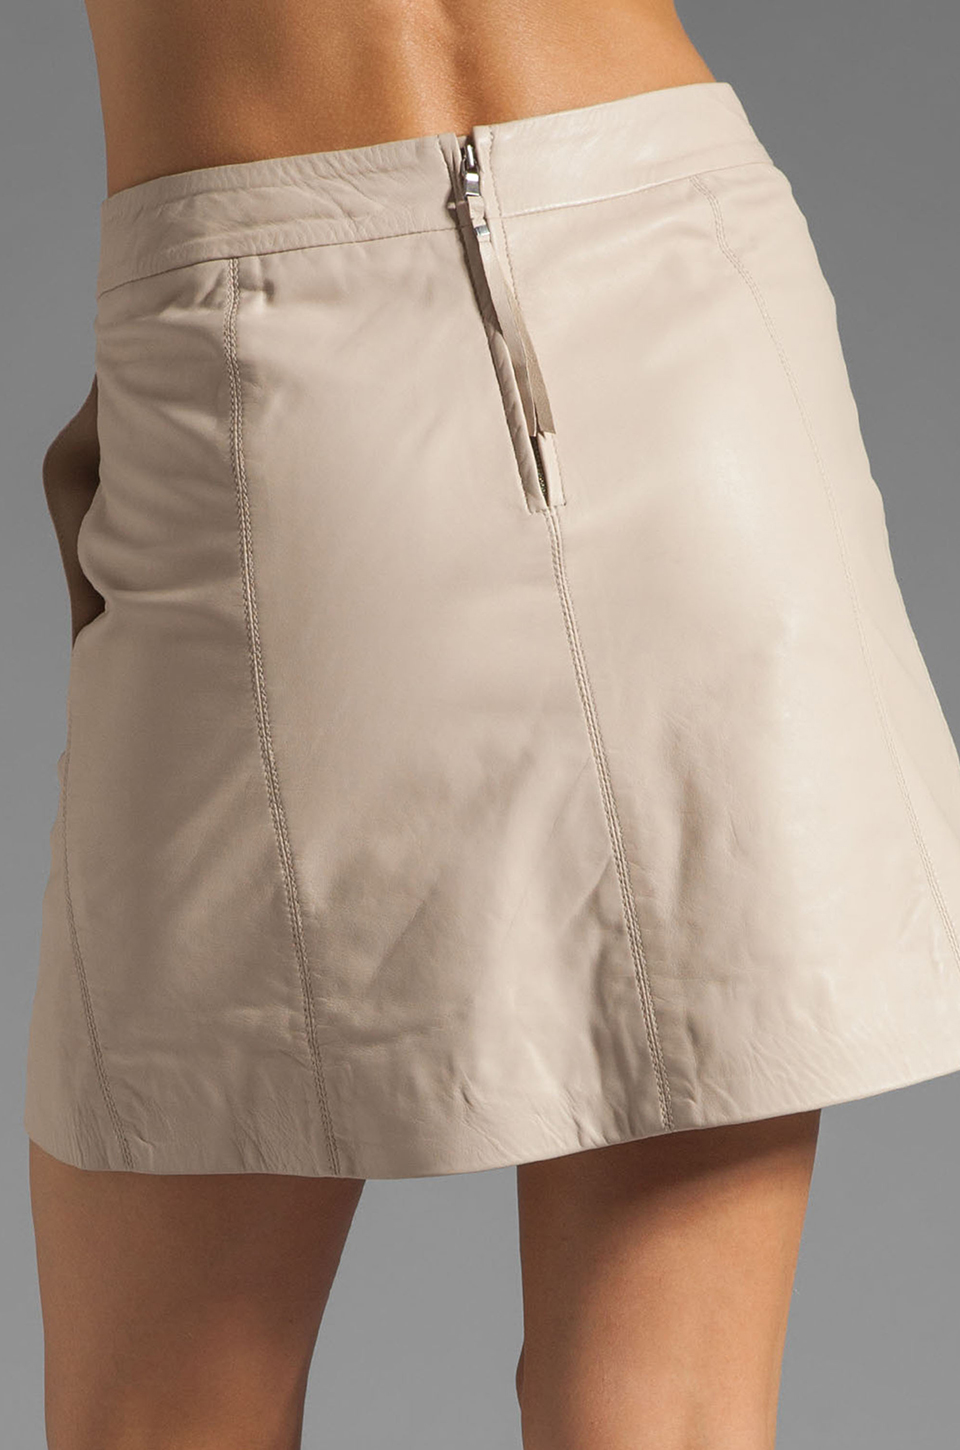 Marc by Marc Jacobs Jett Leather Skirt in Newsprint Beige